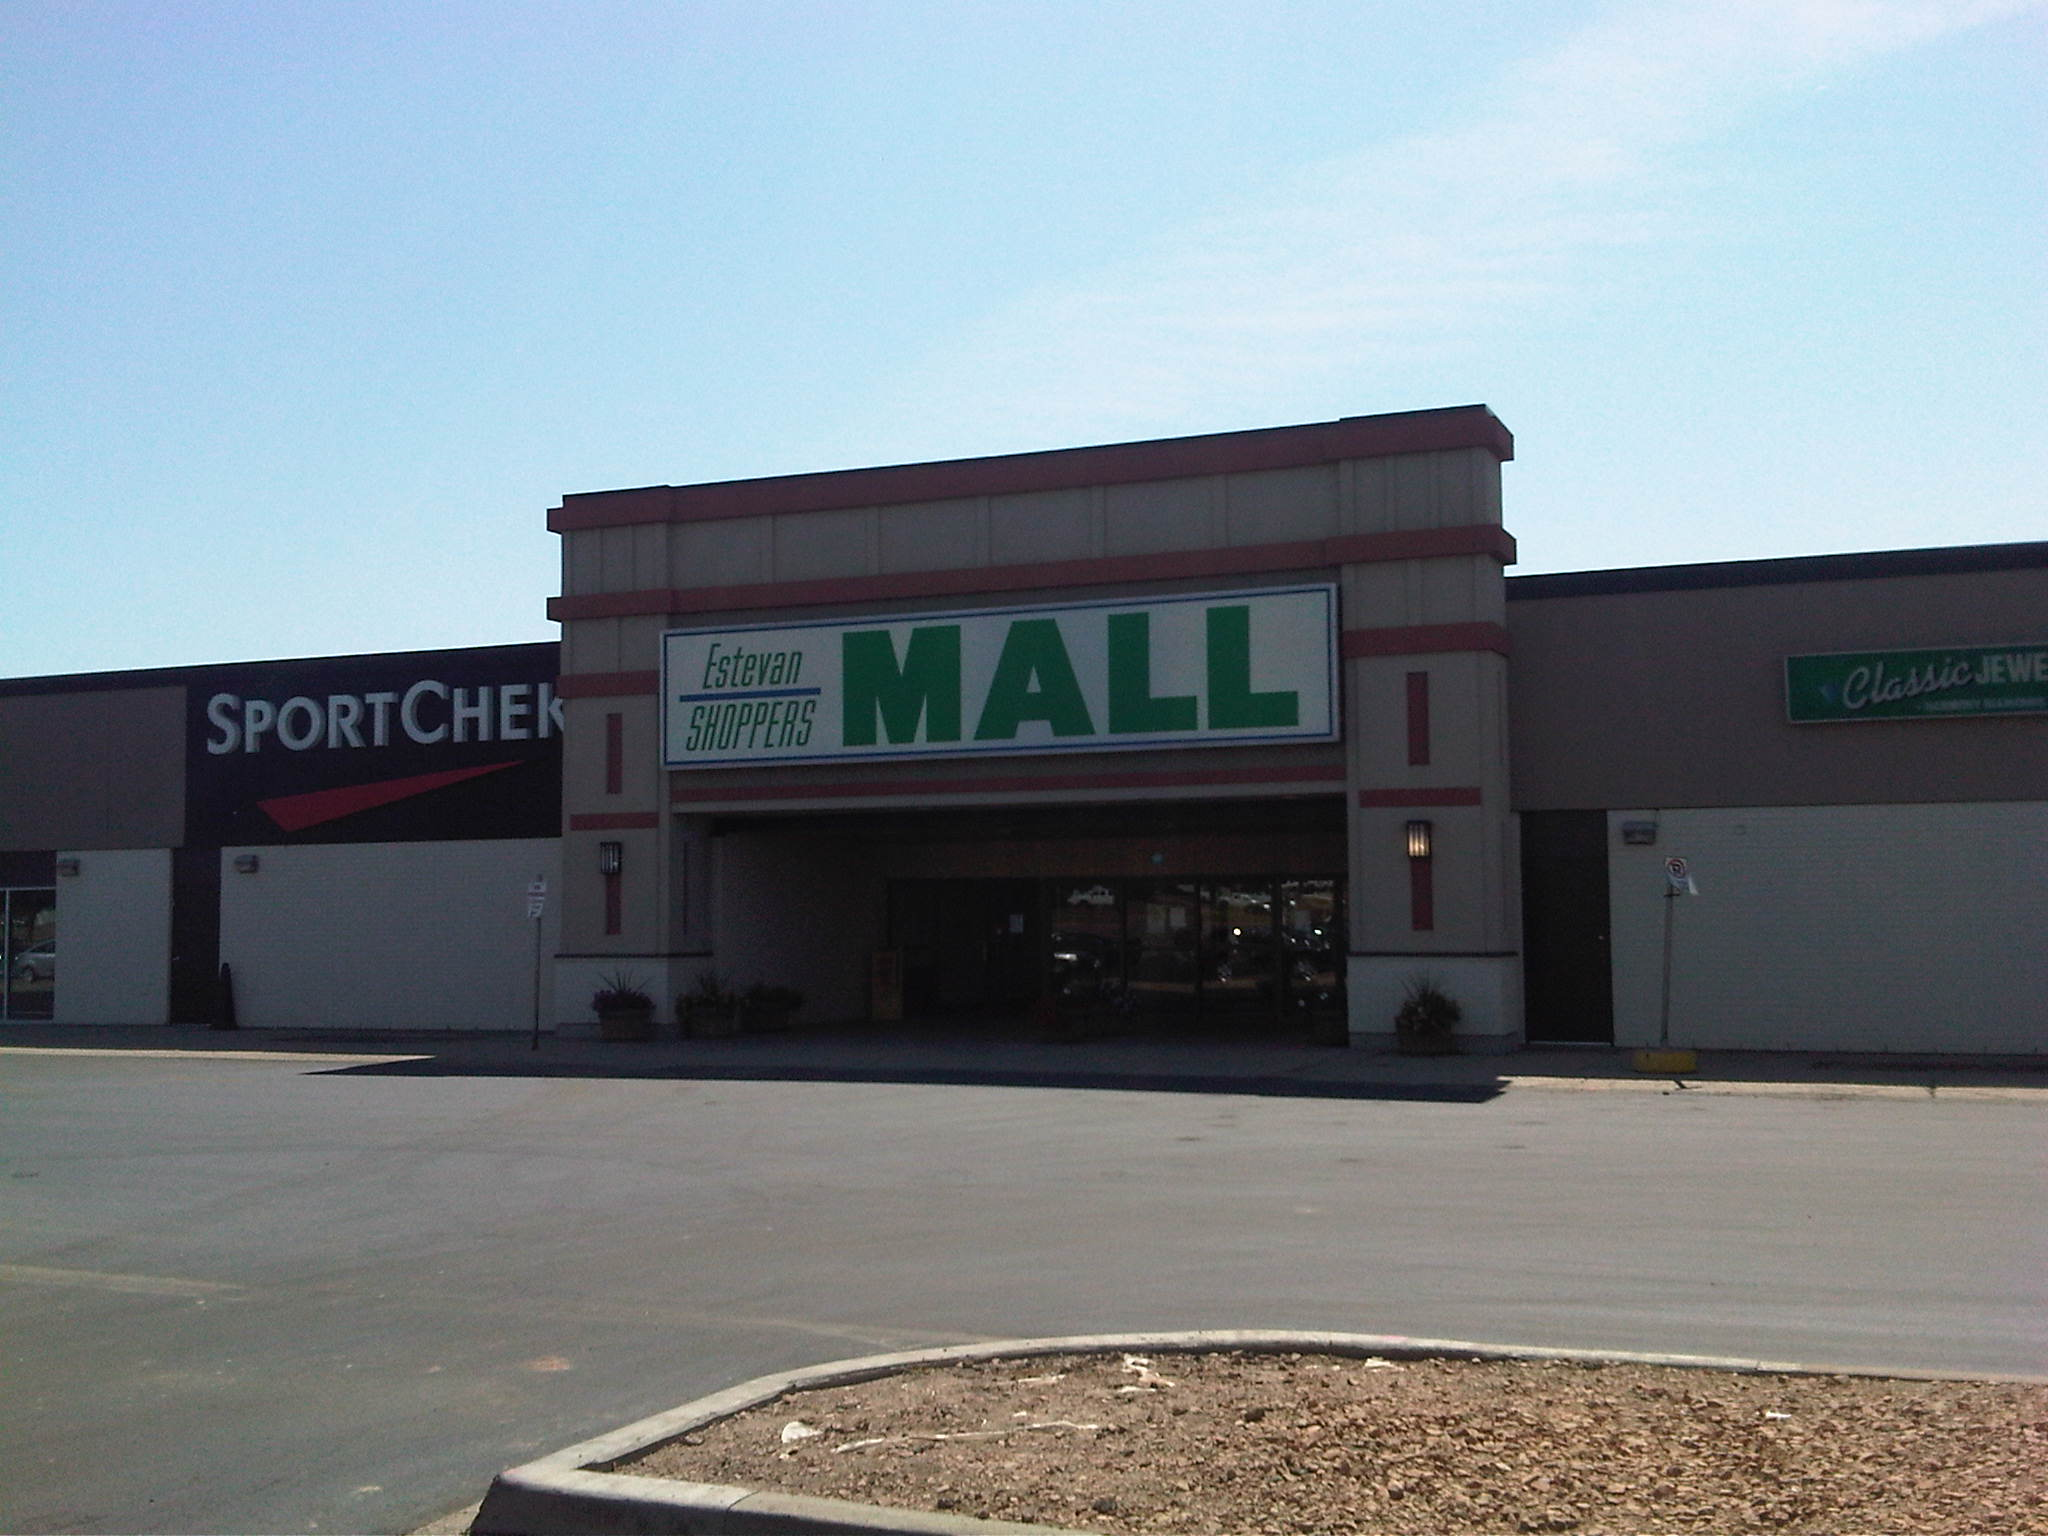 Estevan Shoppers' Mall